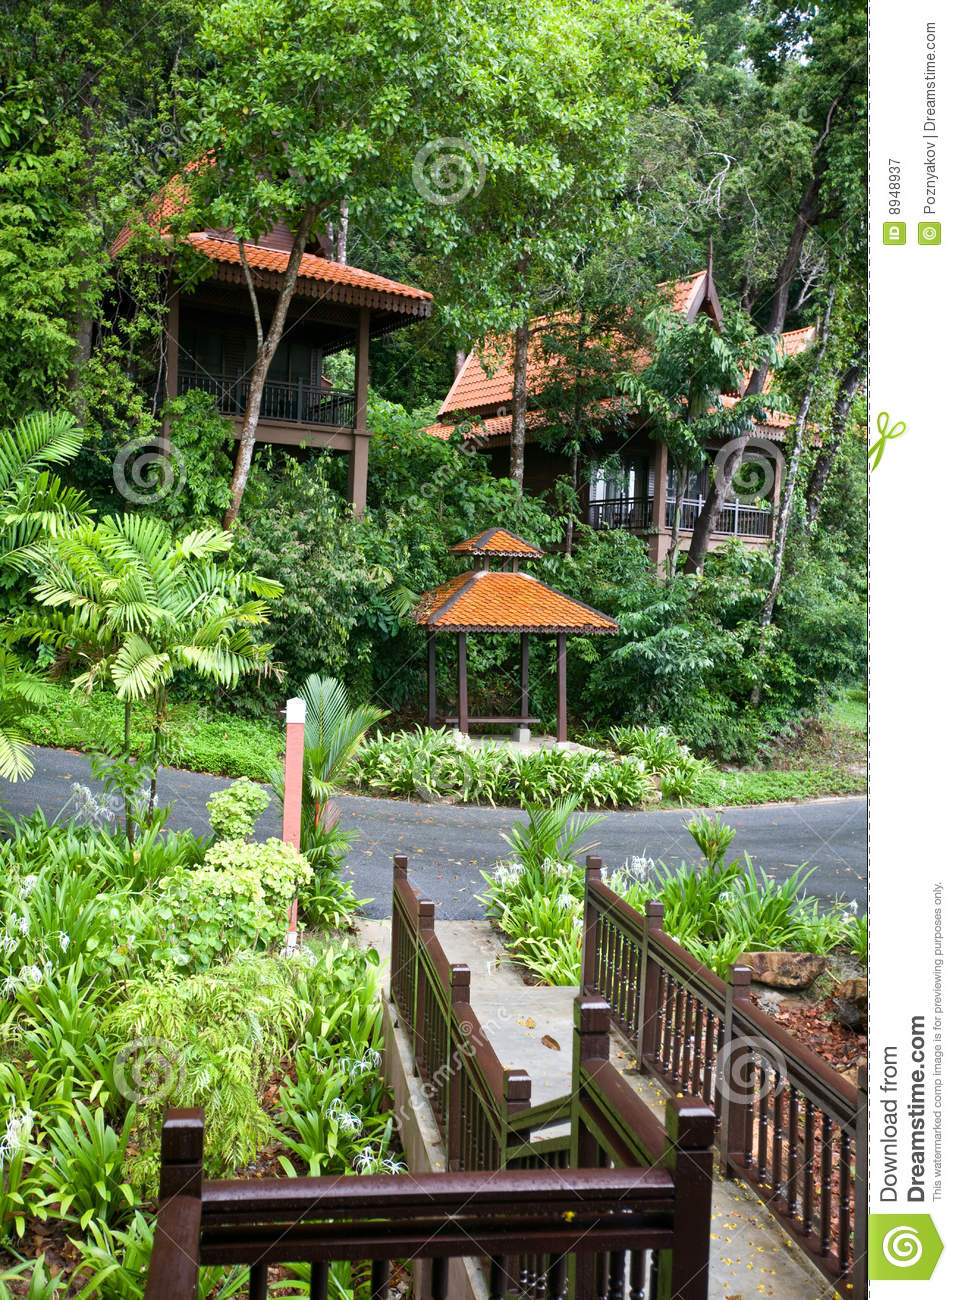 Healh Resort In Rainforest Ecotourism Royalty Free Stock